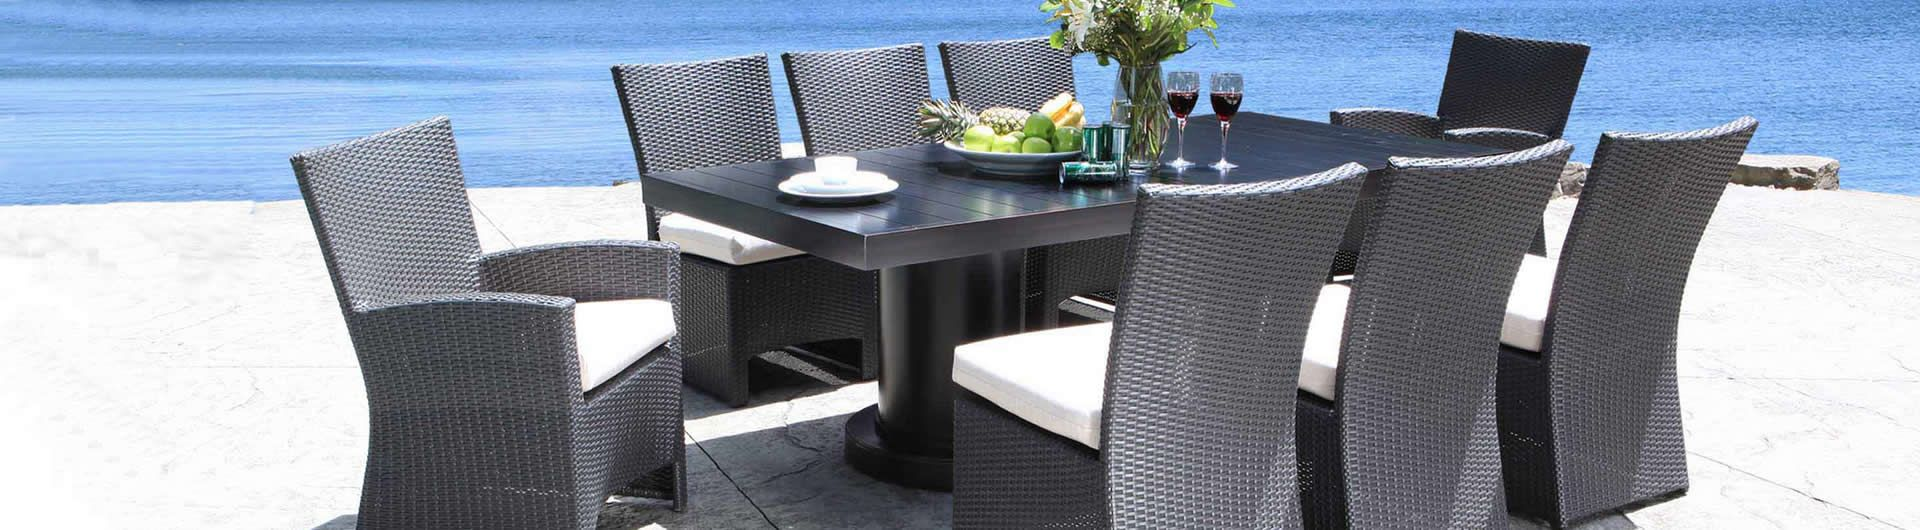 Bimini Dining Collection